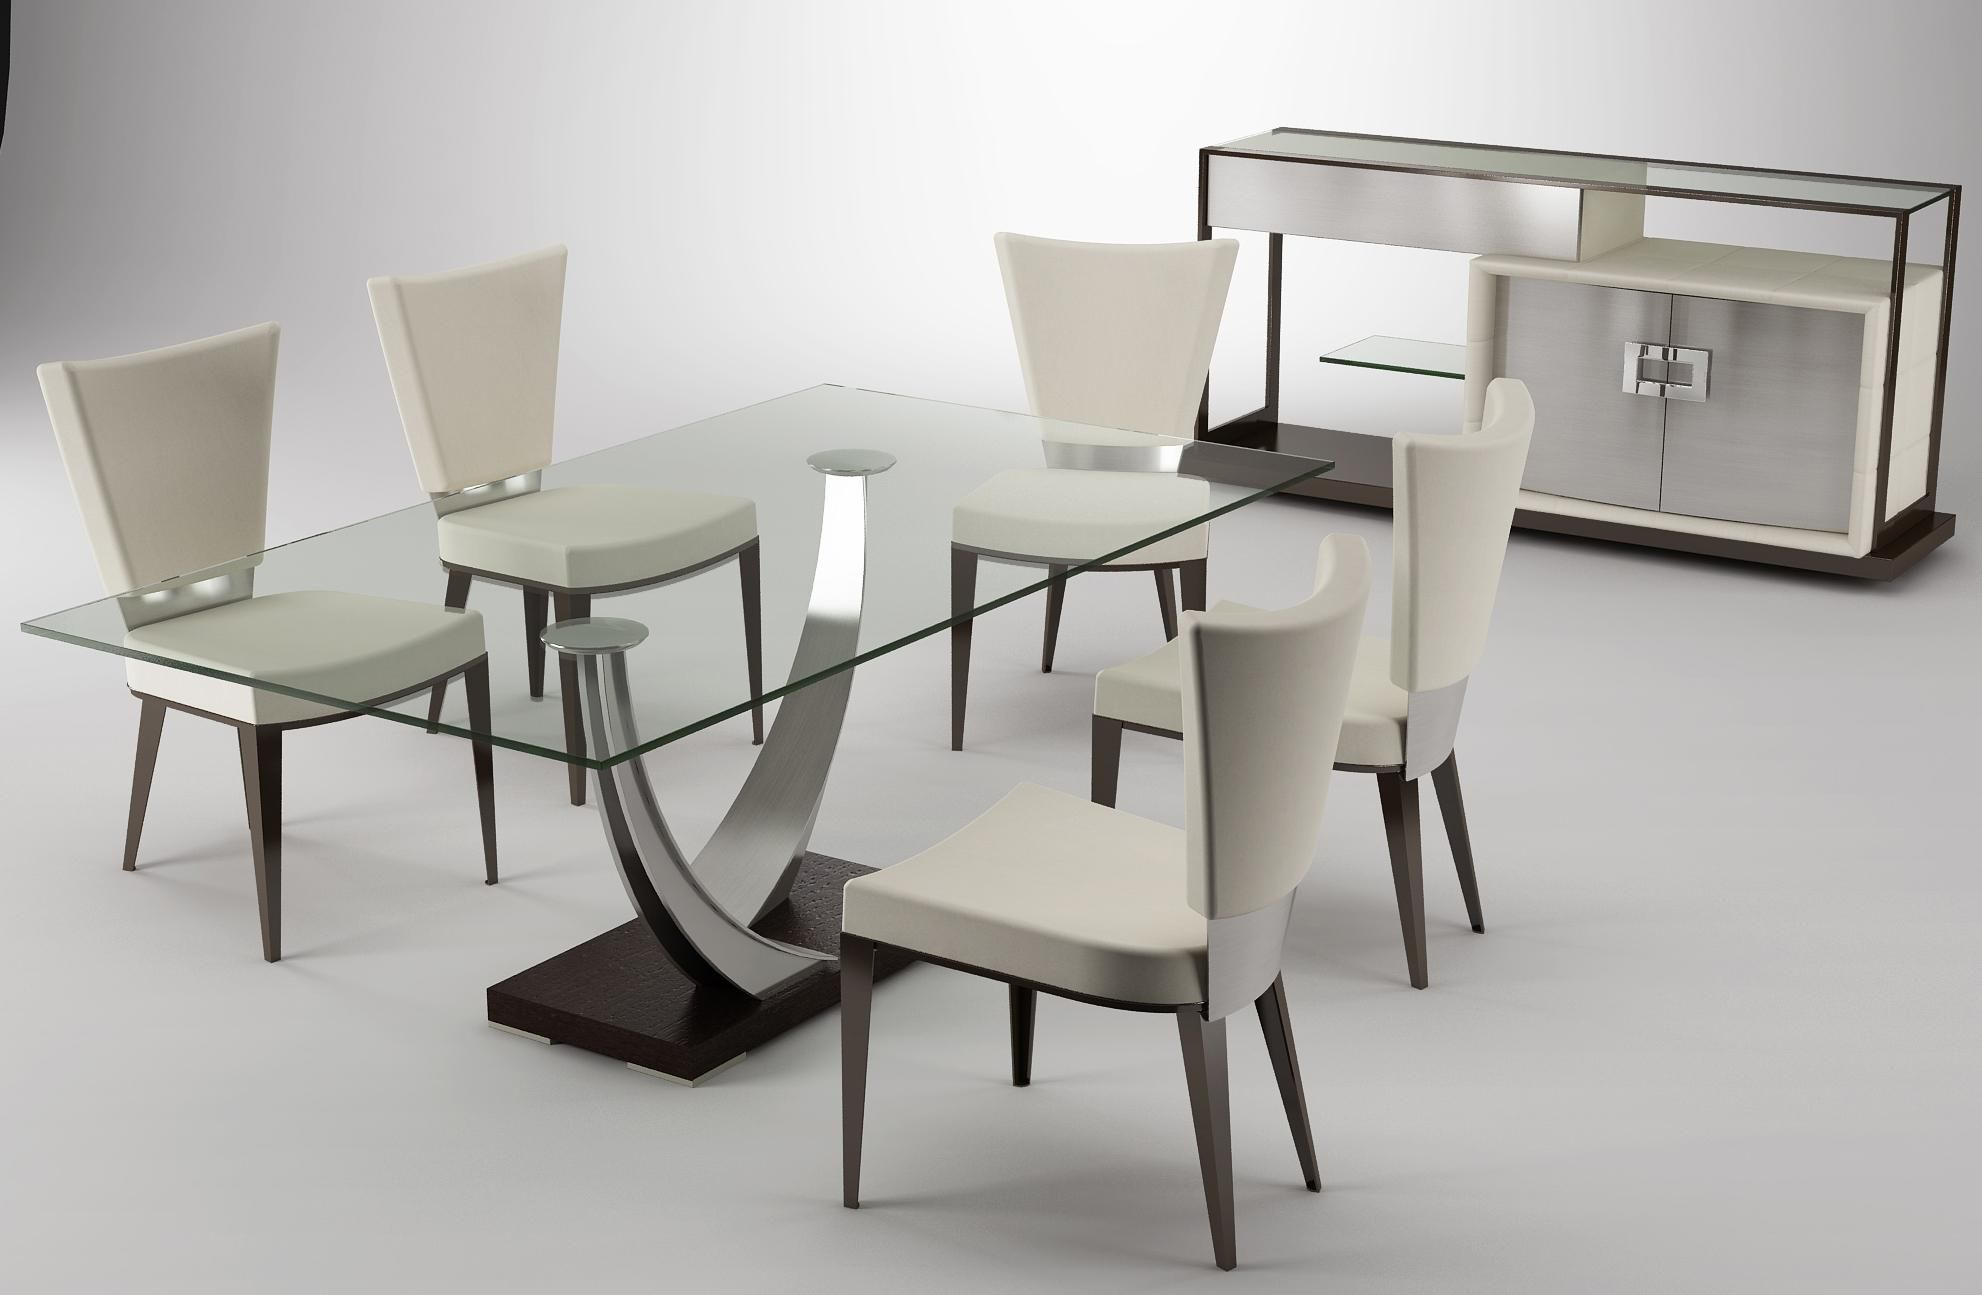 19 Magnificent Modern Dining Tables You Need To See Right Now Modern Glass Dining Room Modern Dining Room Tables Dining Room Decor Modern